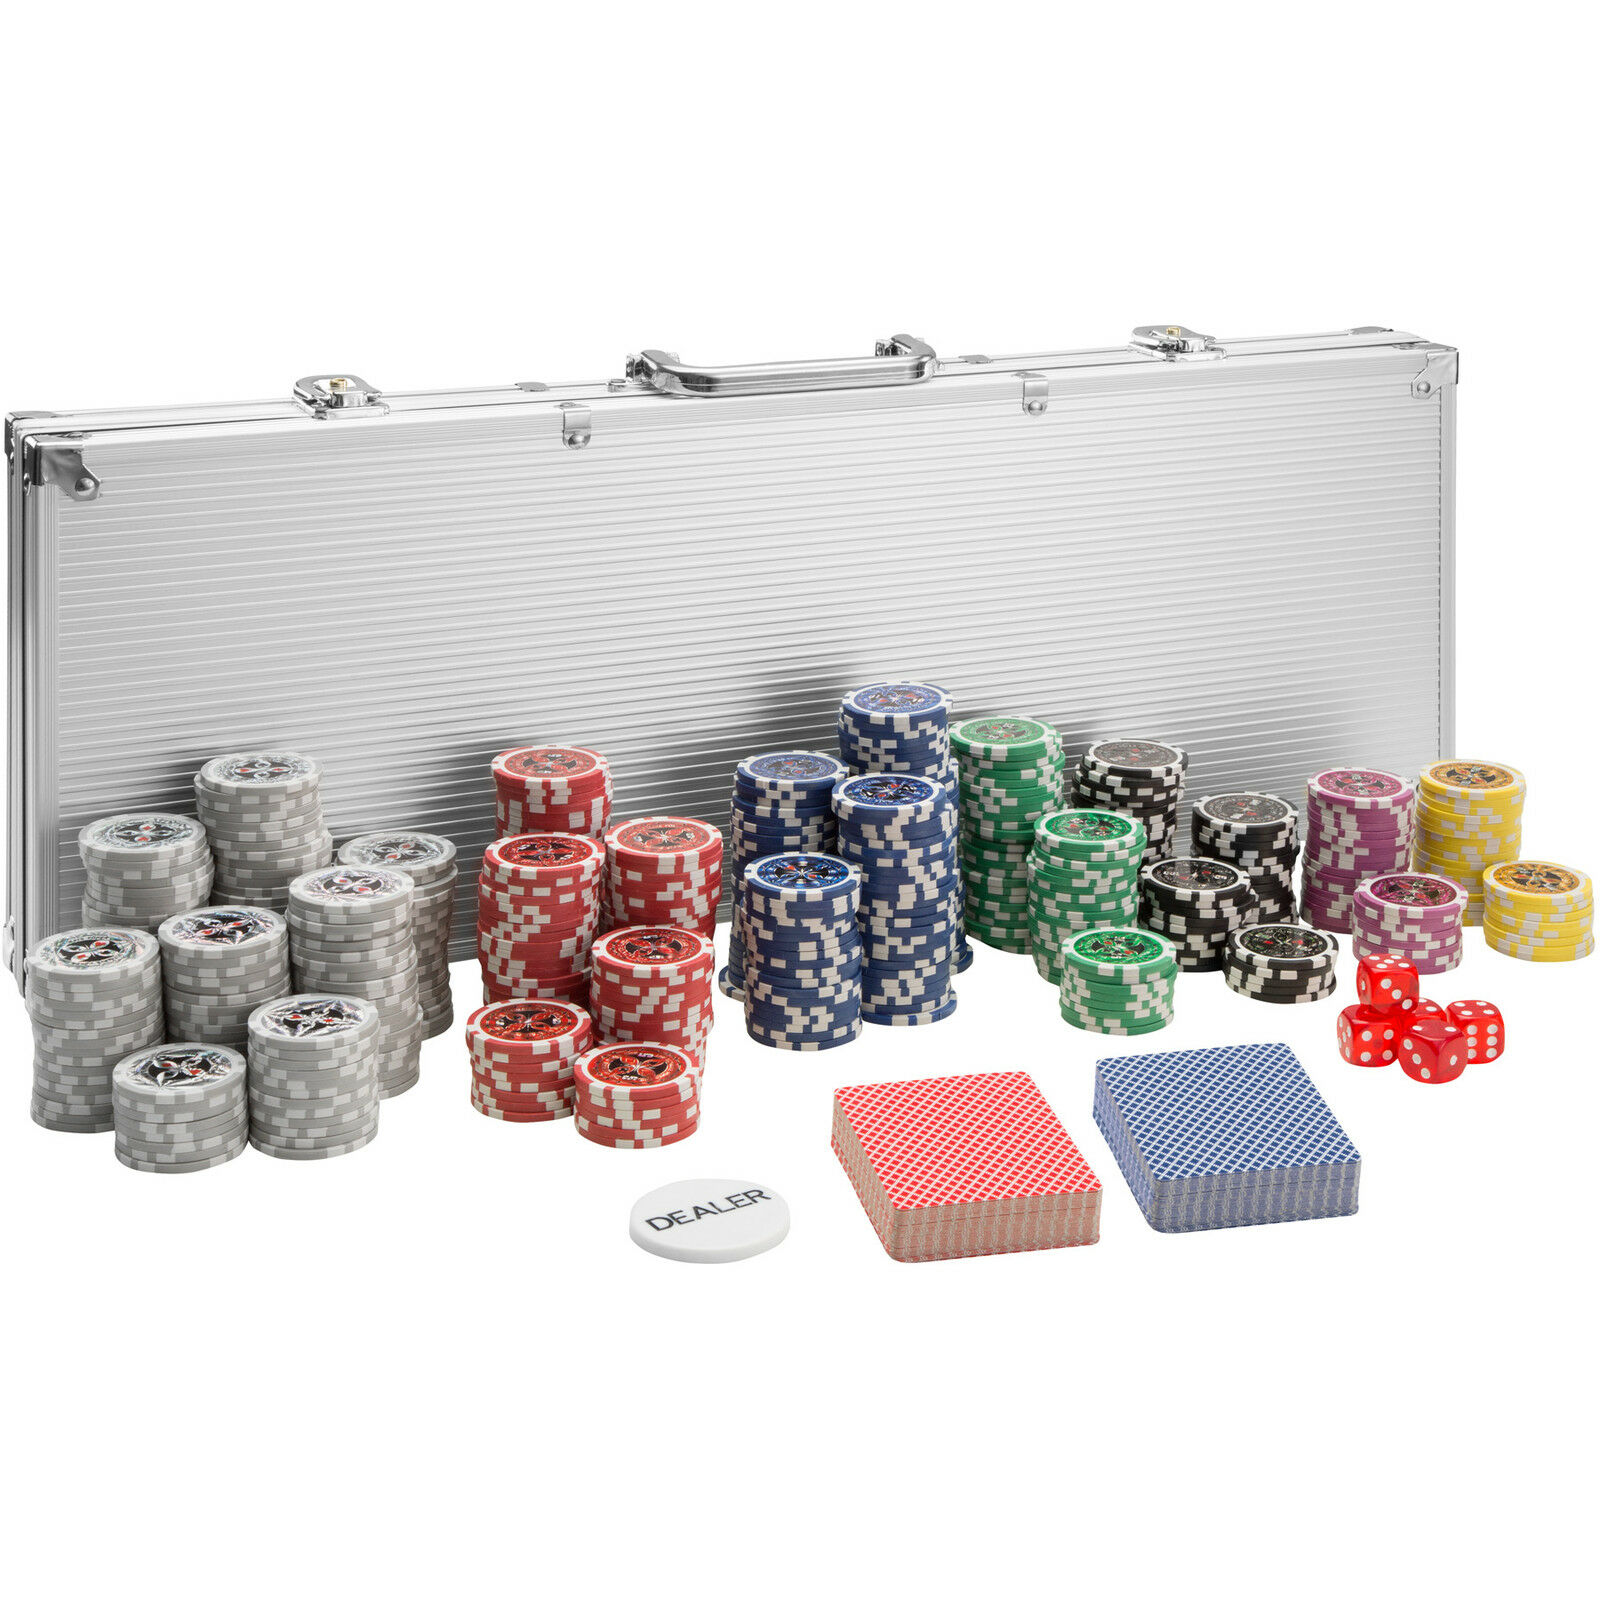 pokerkoffer pokerset 500 chips laser pokerchips poker set jetons alu koffer silb eur 33 49. Black Bedroom Furniture Sets. Home Design Ideas